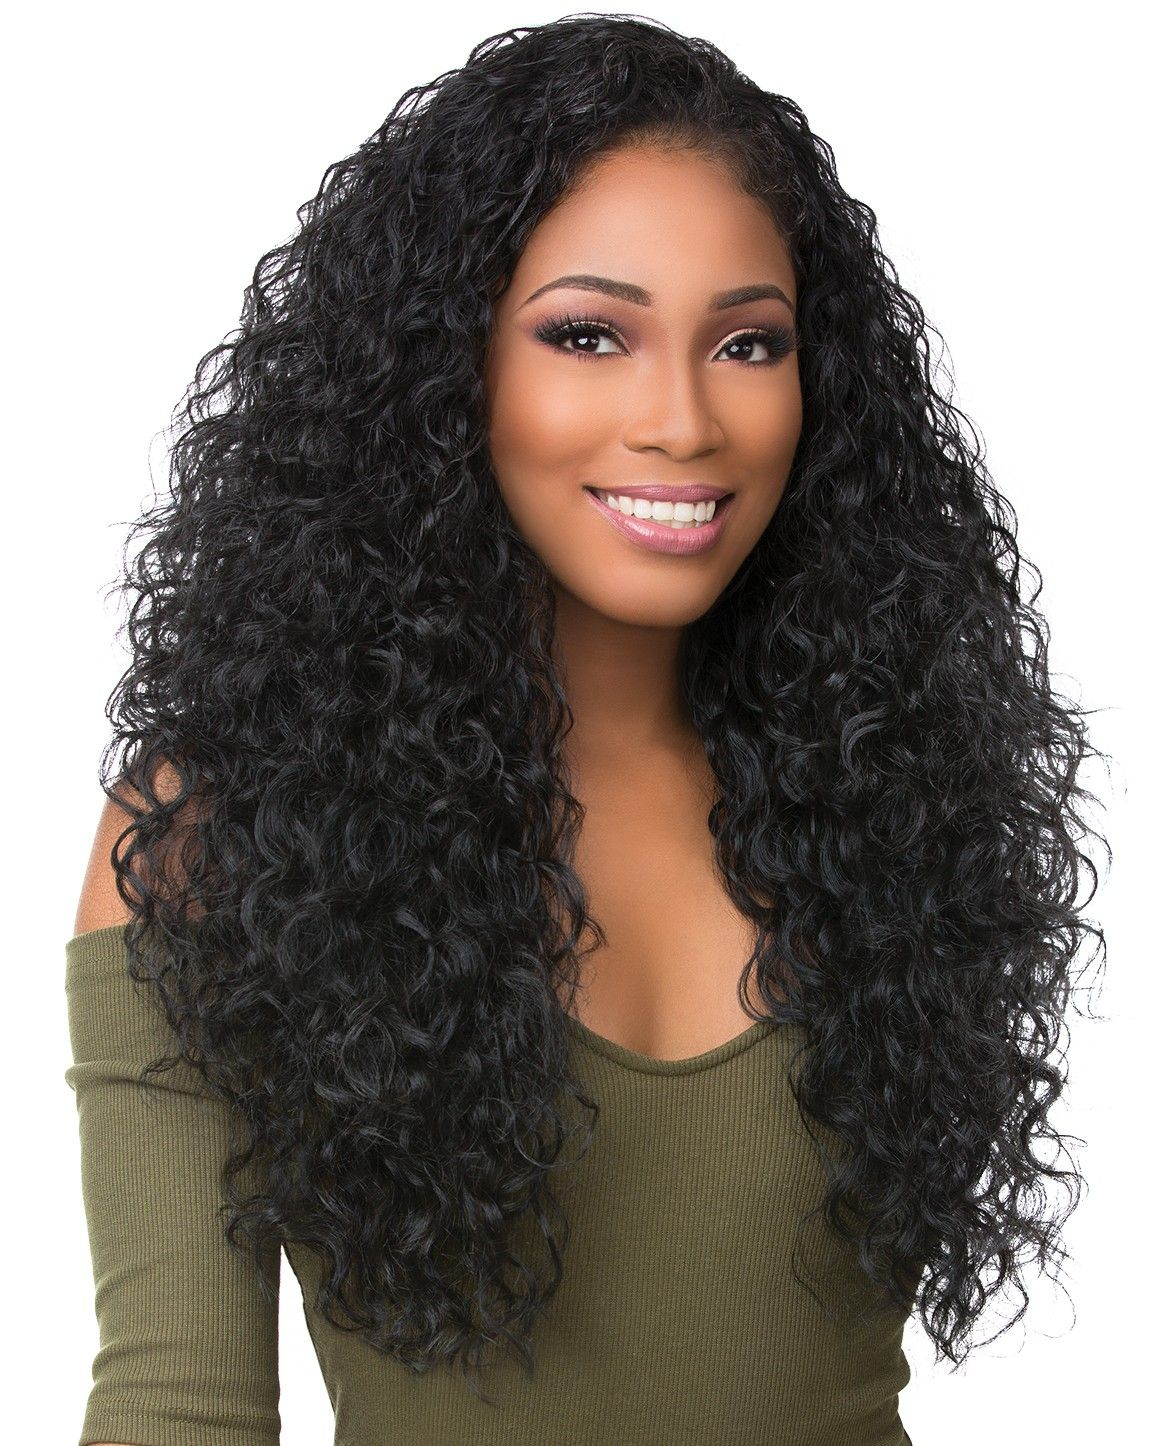 Lace Front Wigs Black Curly Hair Wavy Brazilian Hair Weave Pink Curly Hair Wig Side Curls